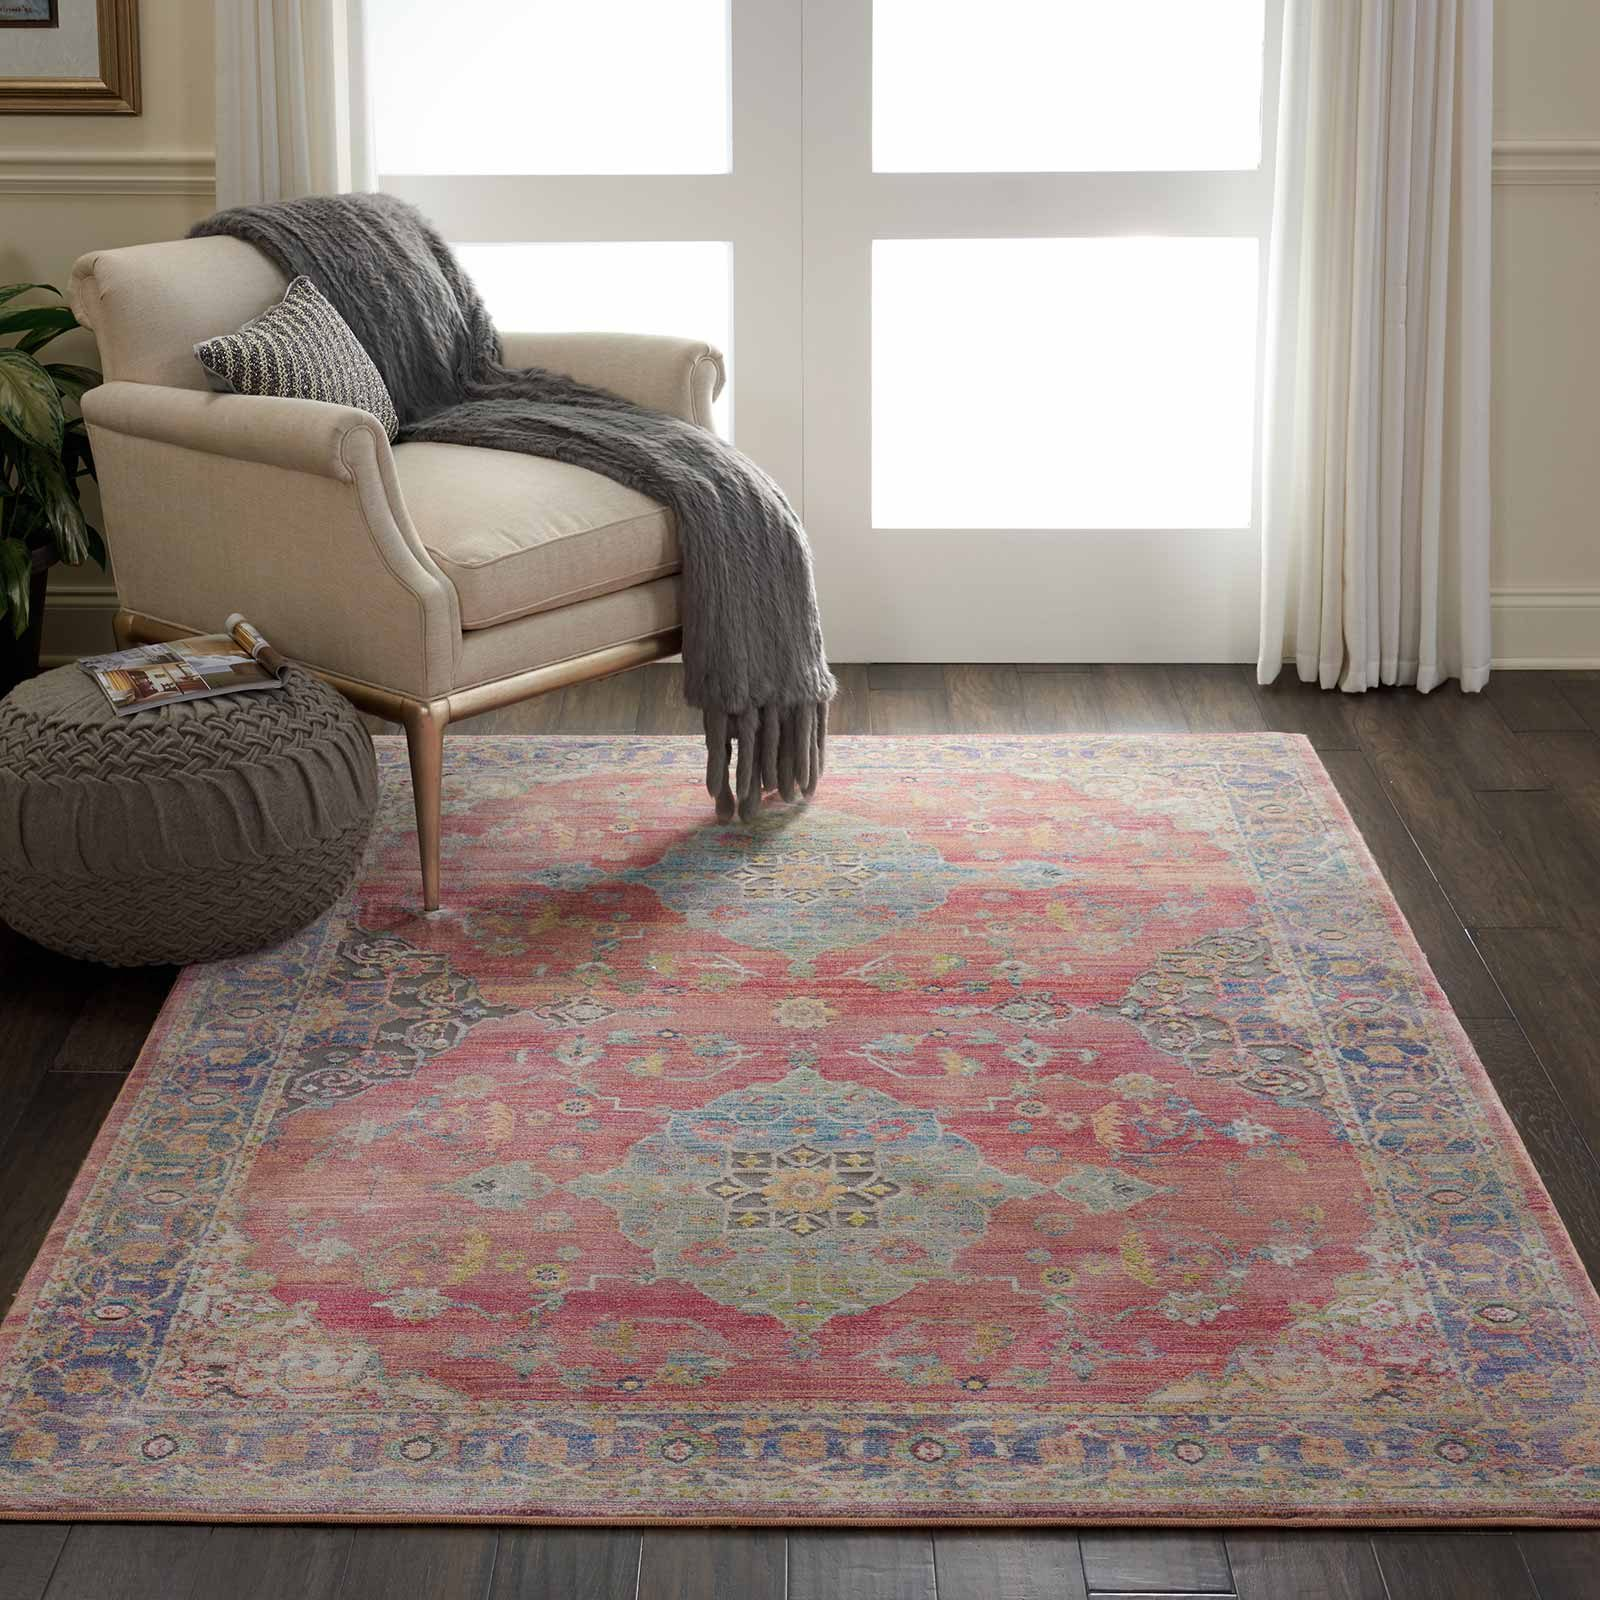 Andessi tapis Ankara Global ANR01 MULTI 5X8 099446456335 interior 1 C